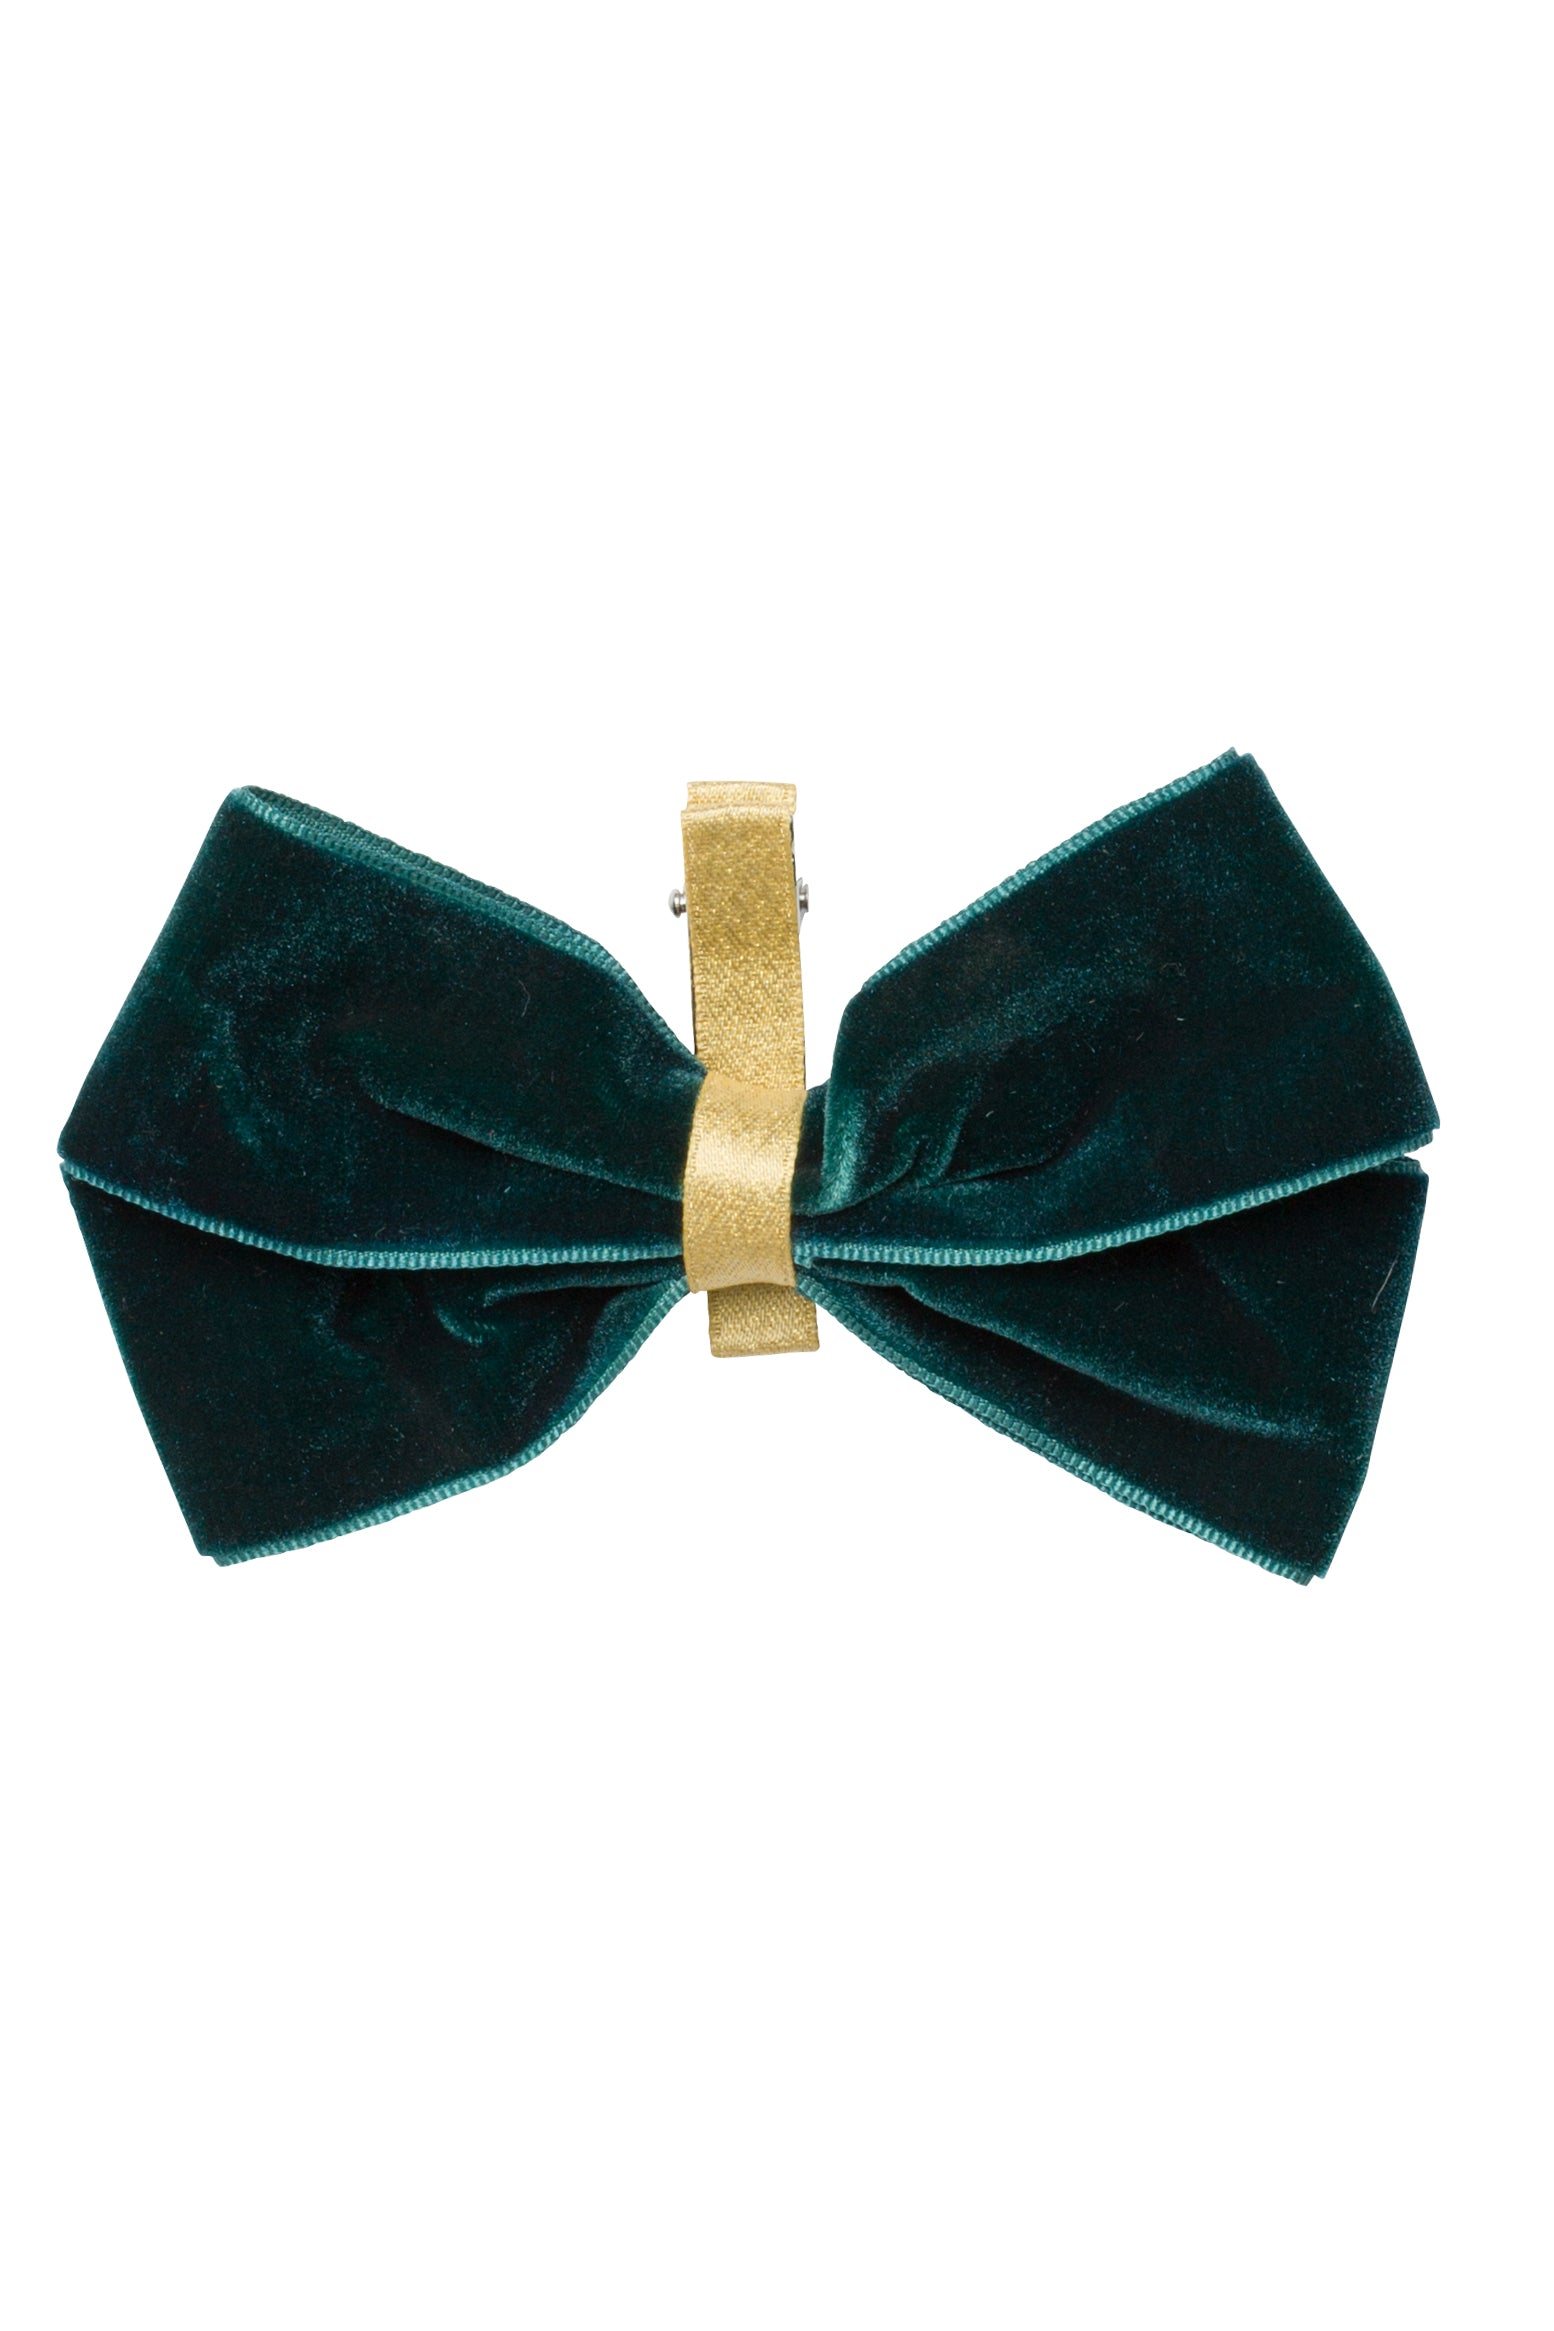 Heather Velvet Clip - Teal/Gold - PROJECT 6, modest fashion